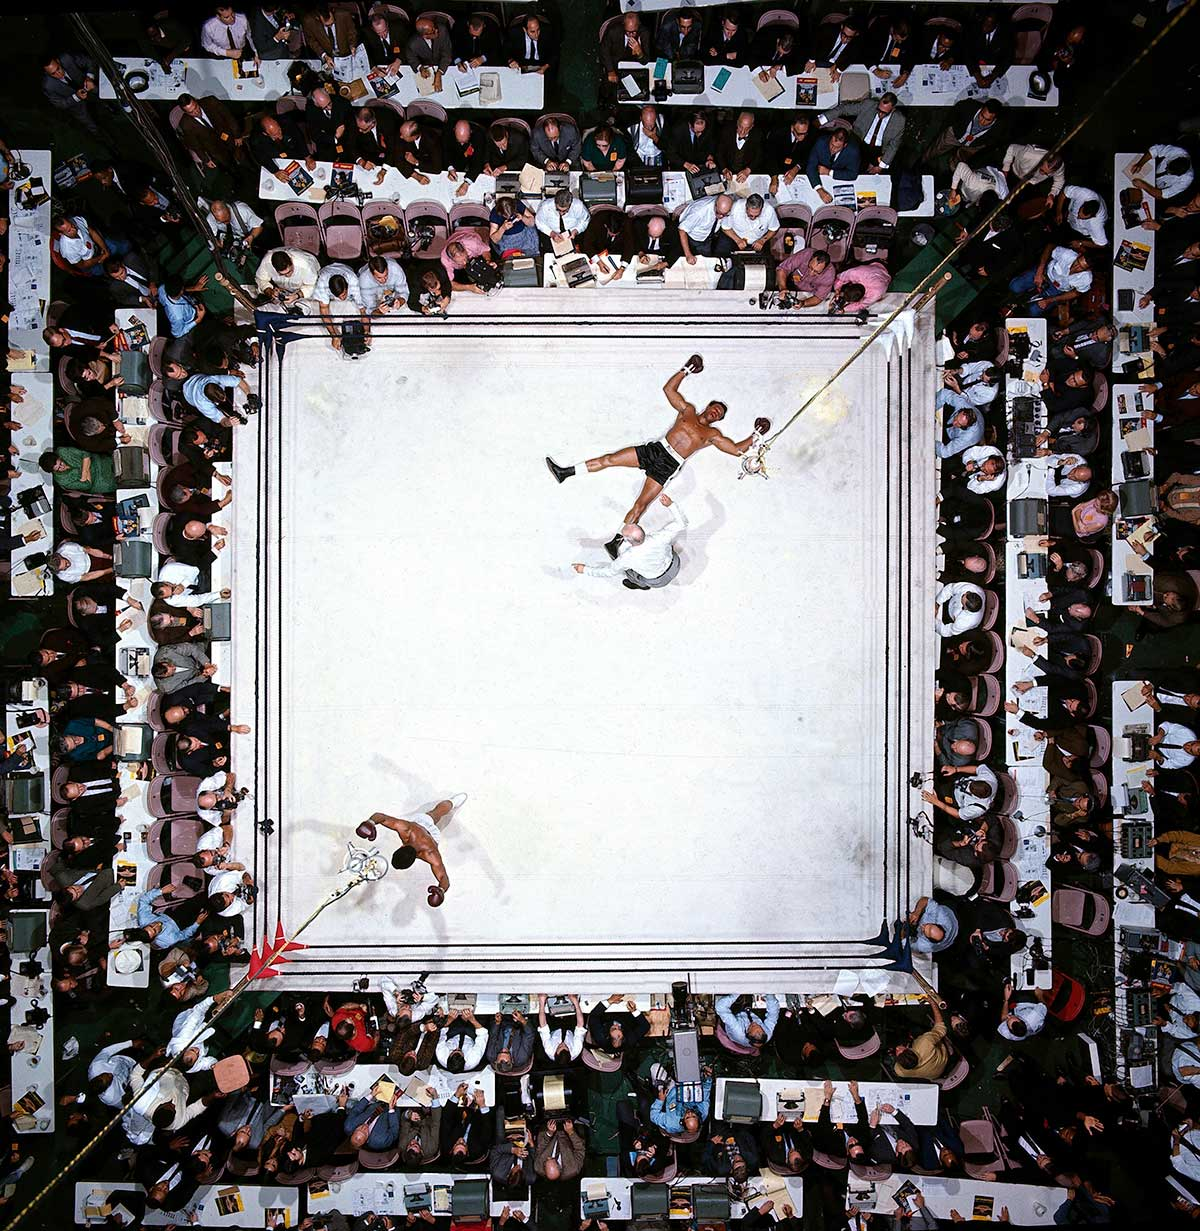 Muhammad Ali vs. Cleveland Williams at the Astrodome, Houston, 1966                               Neil Leifer:   I think this is the best picture I ever made. It's the only picture of mine that I have in my home. I could go on for a long time about the technical aspects of the shot, how I studied the Astrodome, planned the photo for weeks before the fight, pictured the shot in my head, rigged up the remote trigger that I used to get the shot from above while I was physically down at ringside shooting the fight — but what makes this so special to me is that it's as close as I've ever gotten to a perfect shot. Ali, Williams, the referee, the reporters, the symmetry, the drama — it's the one photograph I've taken where, looking back, I'd change nothing.                                                                NOTE: Leifer is visible here, wearing a light blue shirt and seated near the top along the left-hand side of the ring, with his camera resting in front of him.Neil Leifer is a photographer for Sports Illustrated.